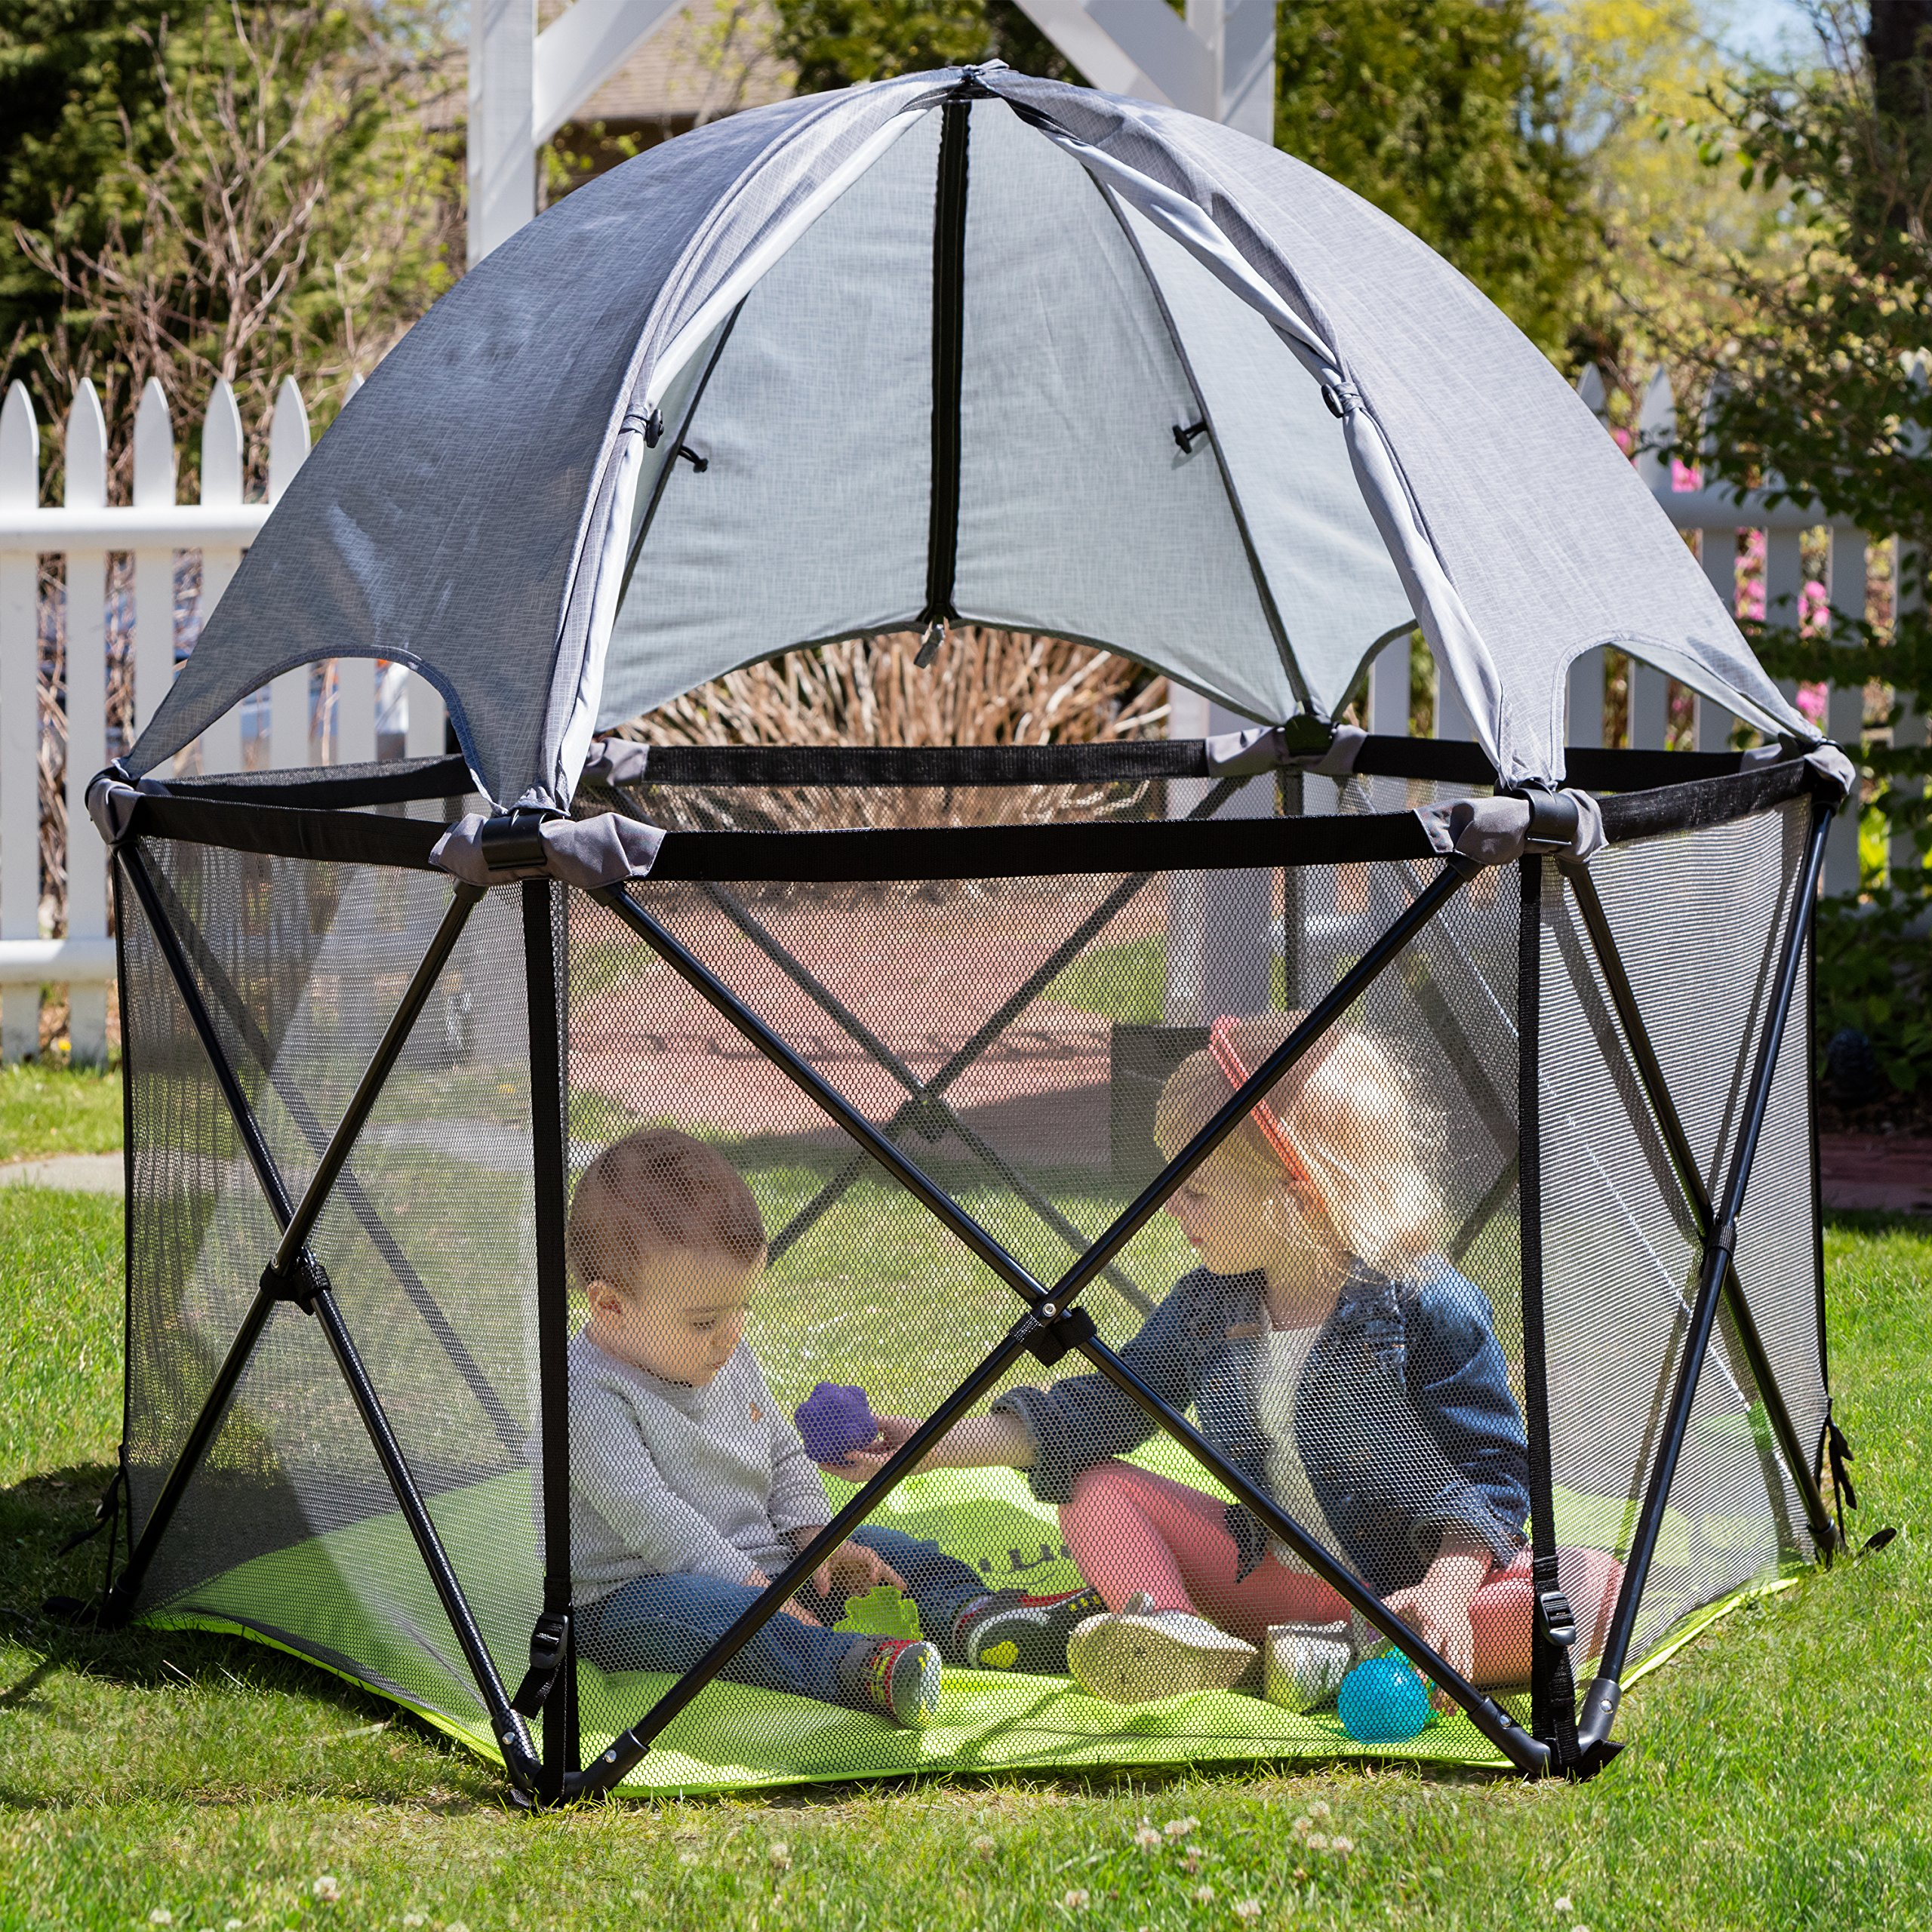 Summer Infant Pop N Play Full Coverage Canopy Outdoor